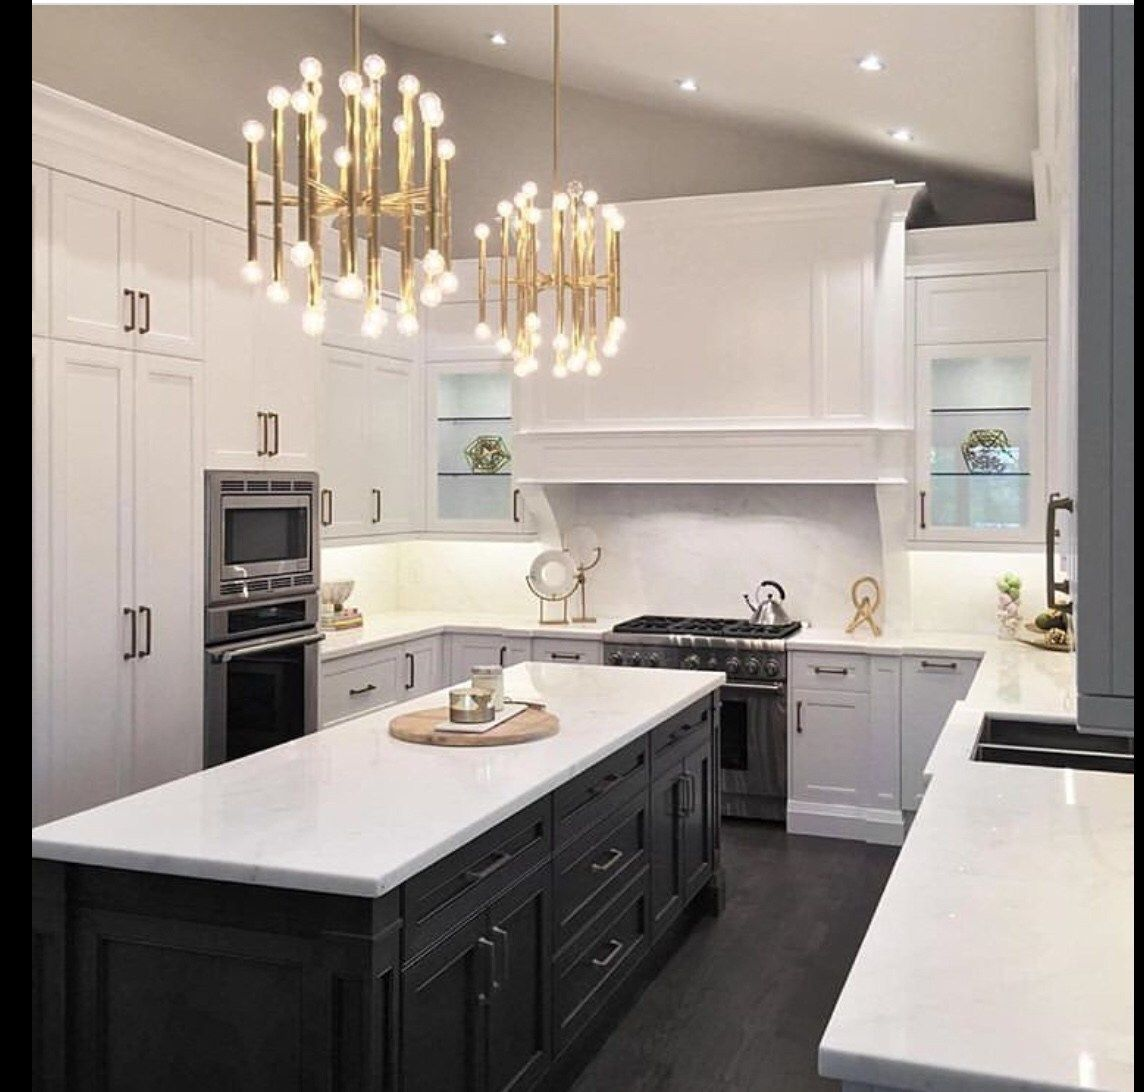 Kitchen Lighting Ideas 2020